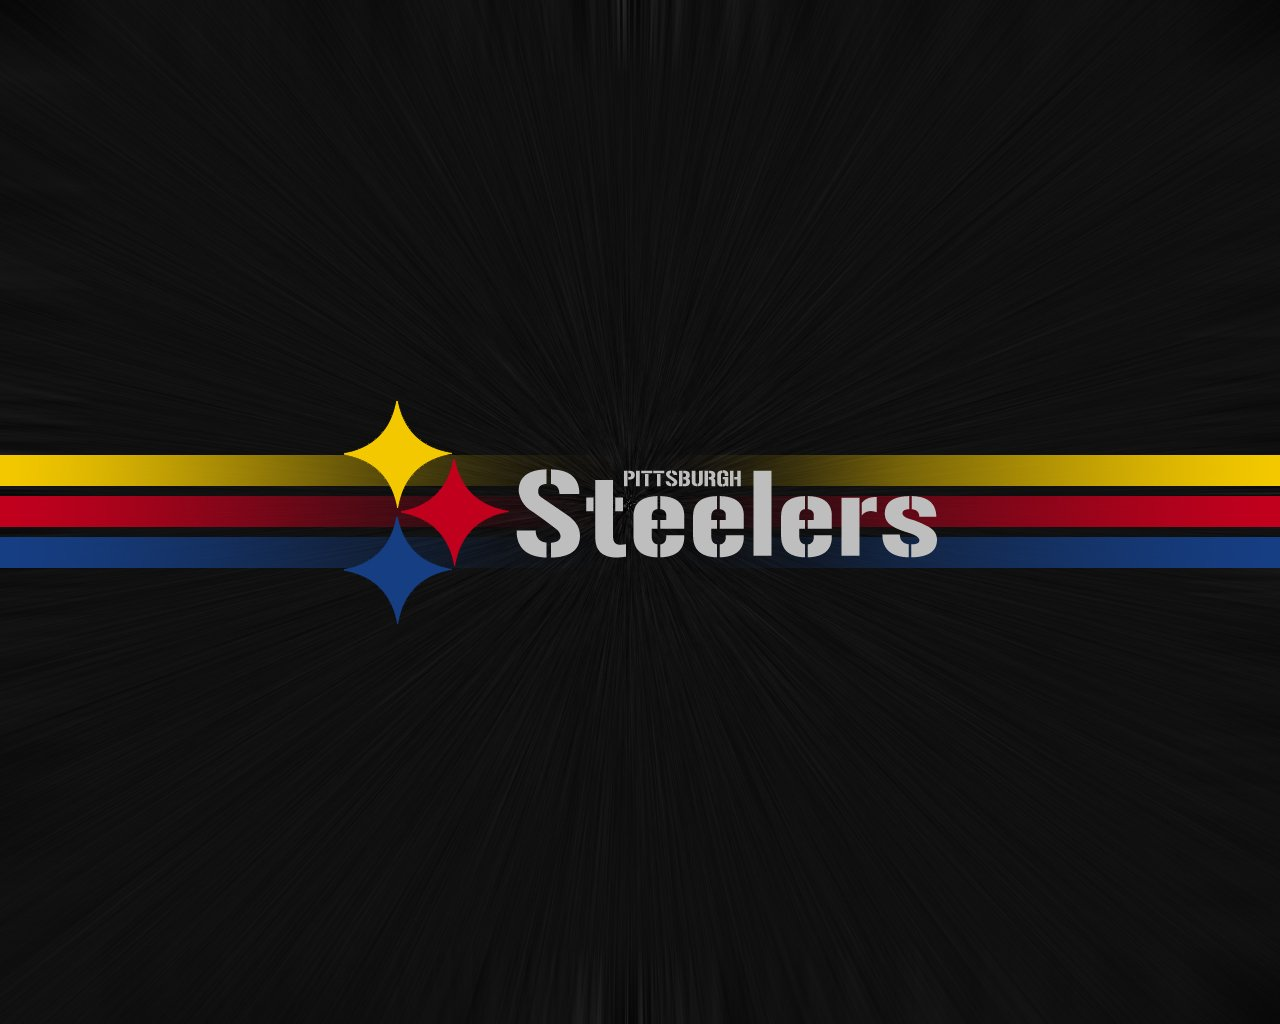 Pittsburgh Steelers wallpaper Pittsburgh Steelers wallpapers 1280x1024